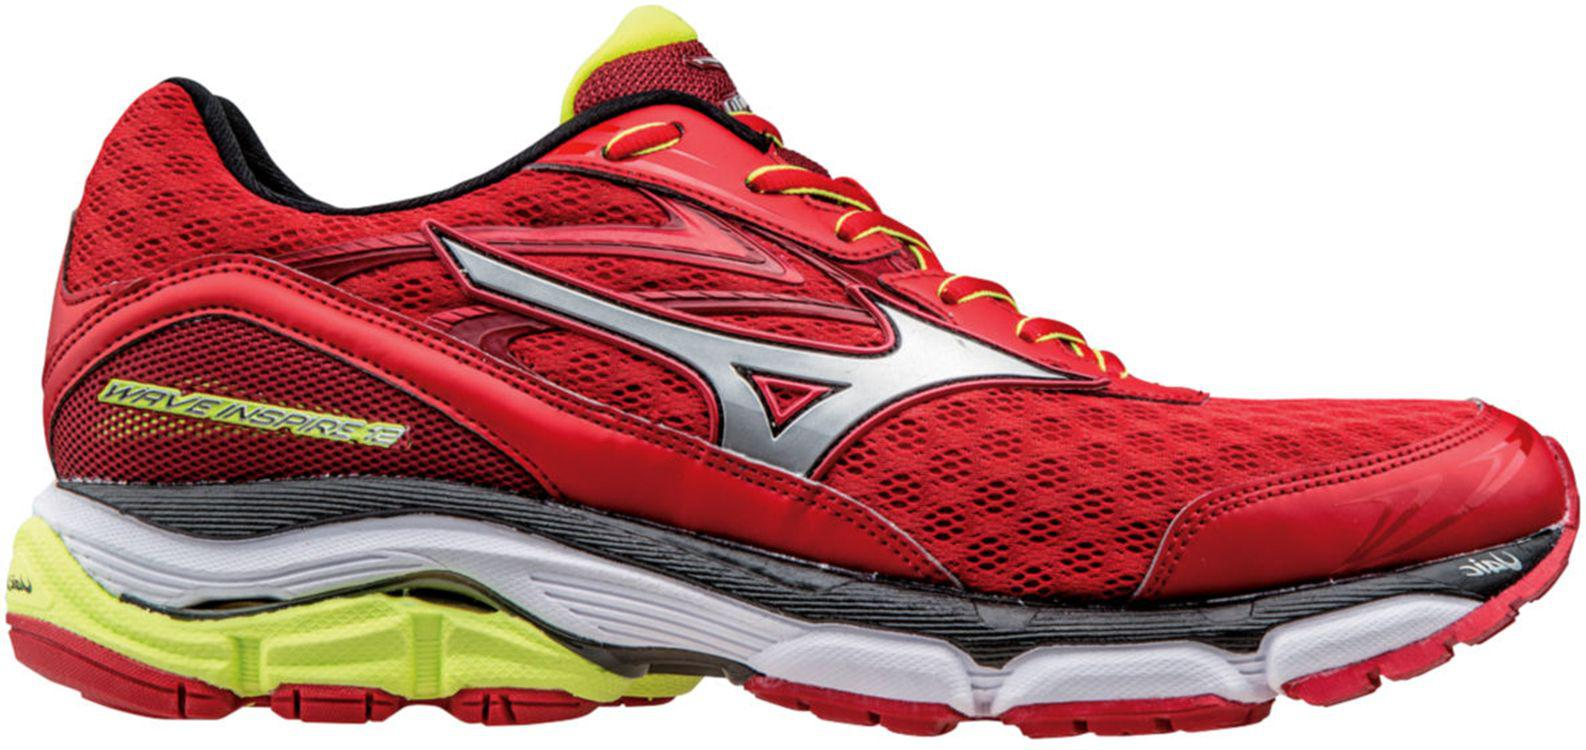 835e843cfd5d Mizuno Wave Inspire 12 Running Shoes in Red for Men - Lyst